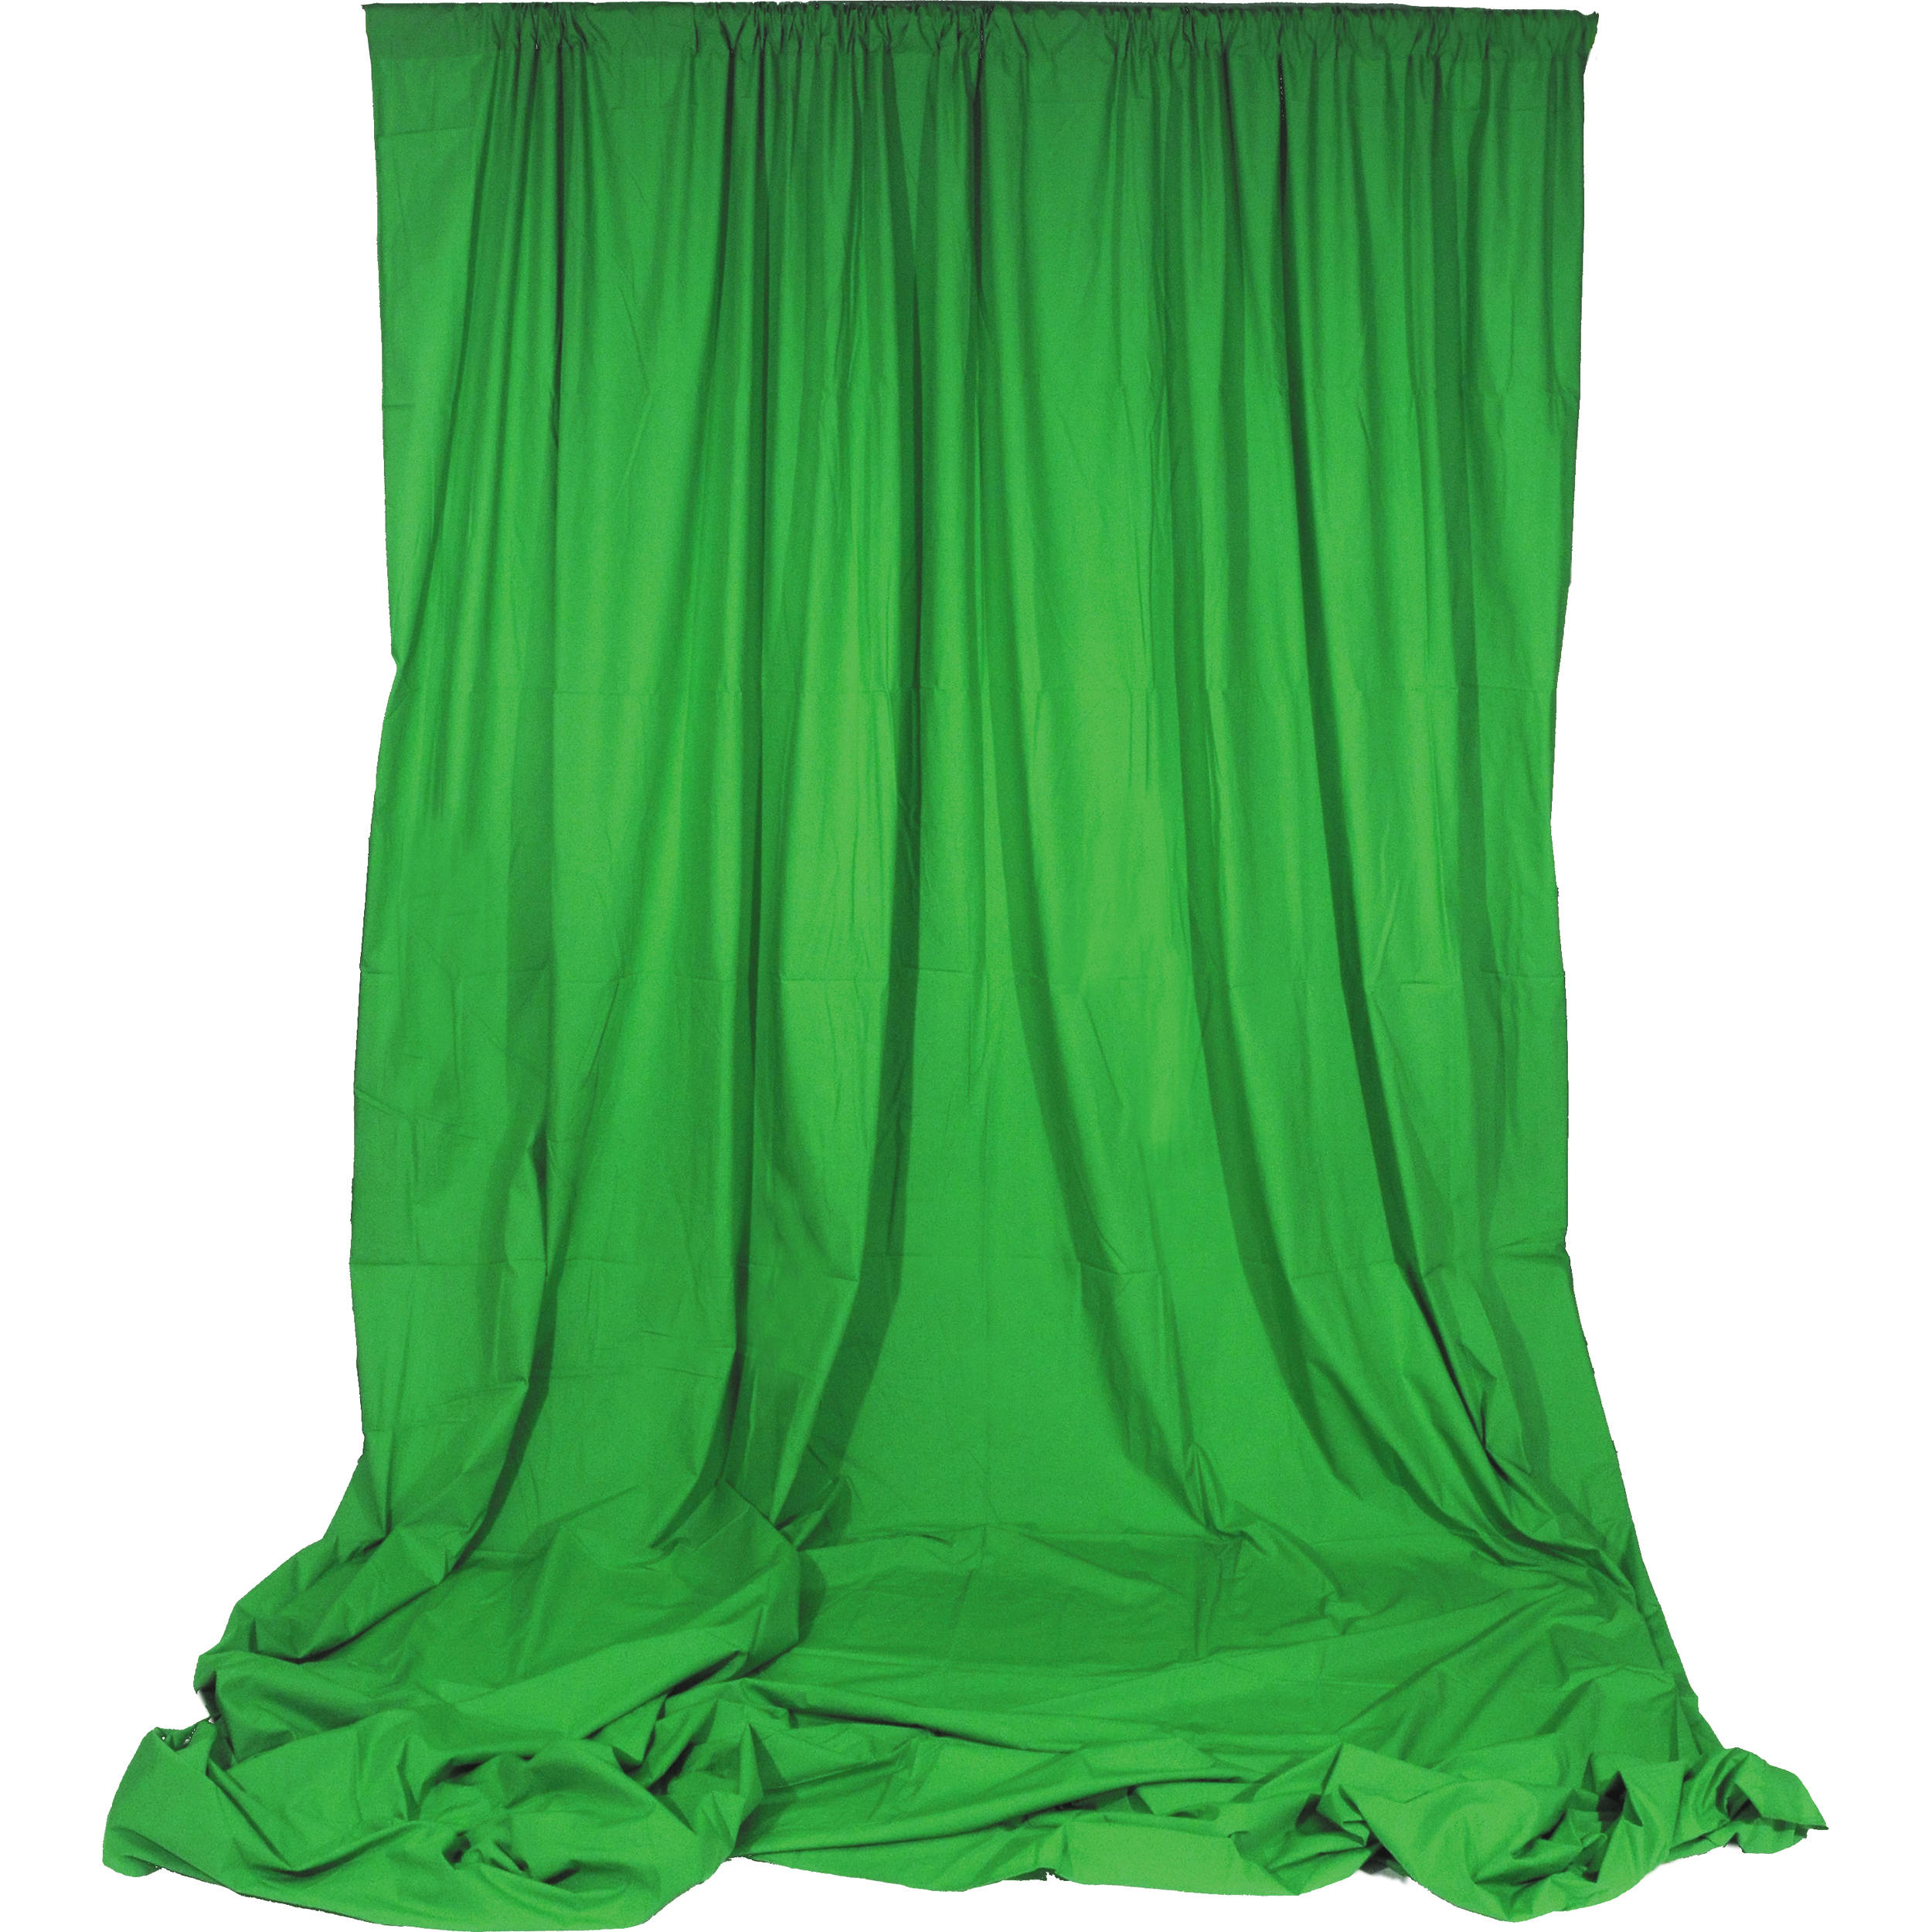 10 X 10 Angler Green Chroma Key Muslin Fabric